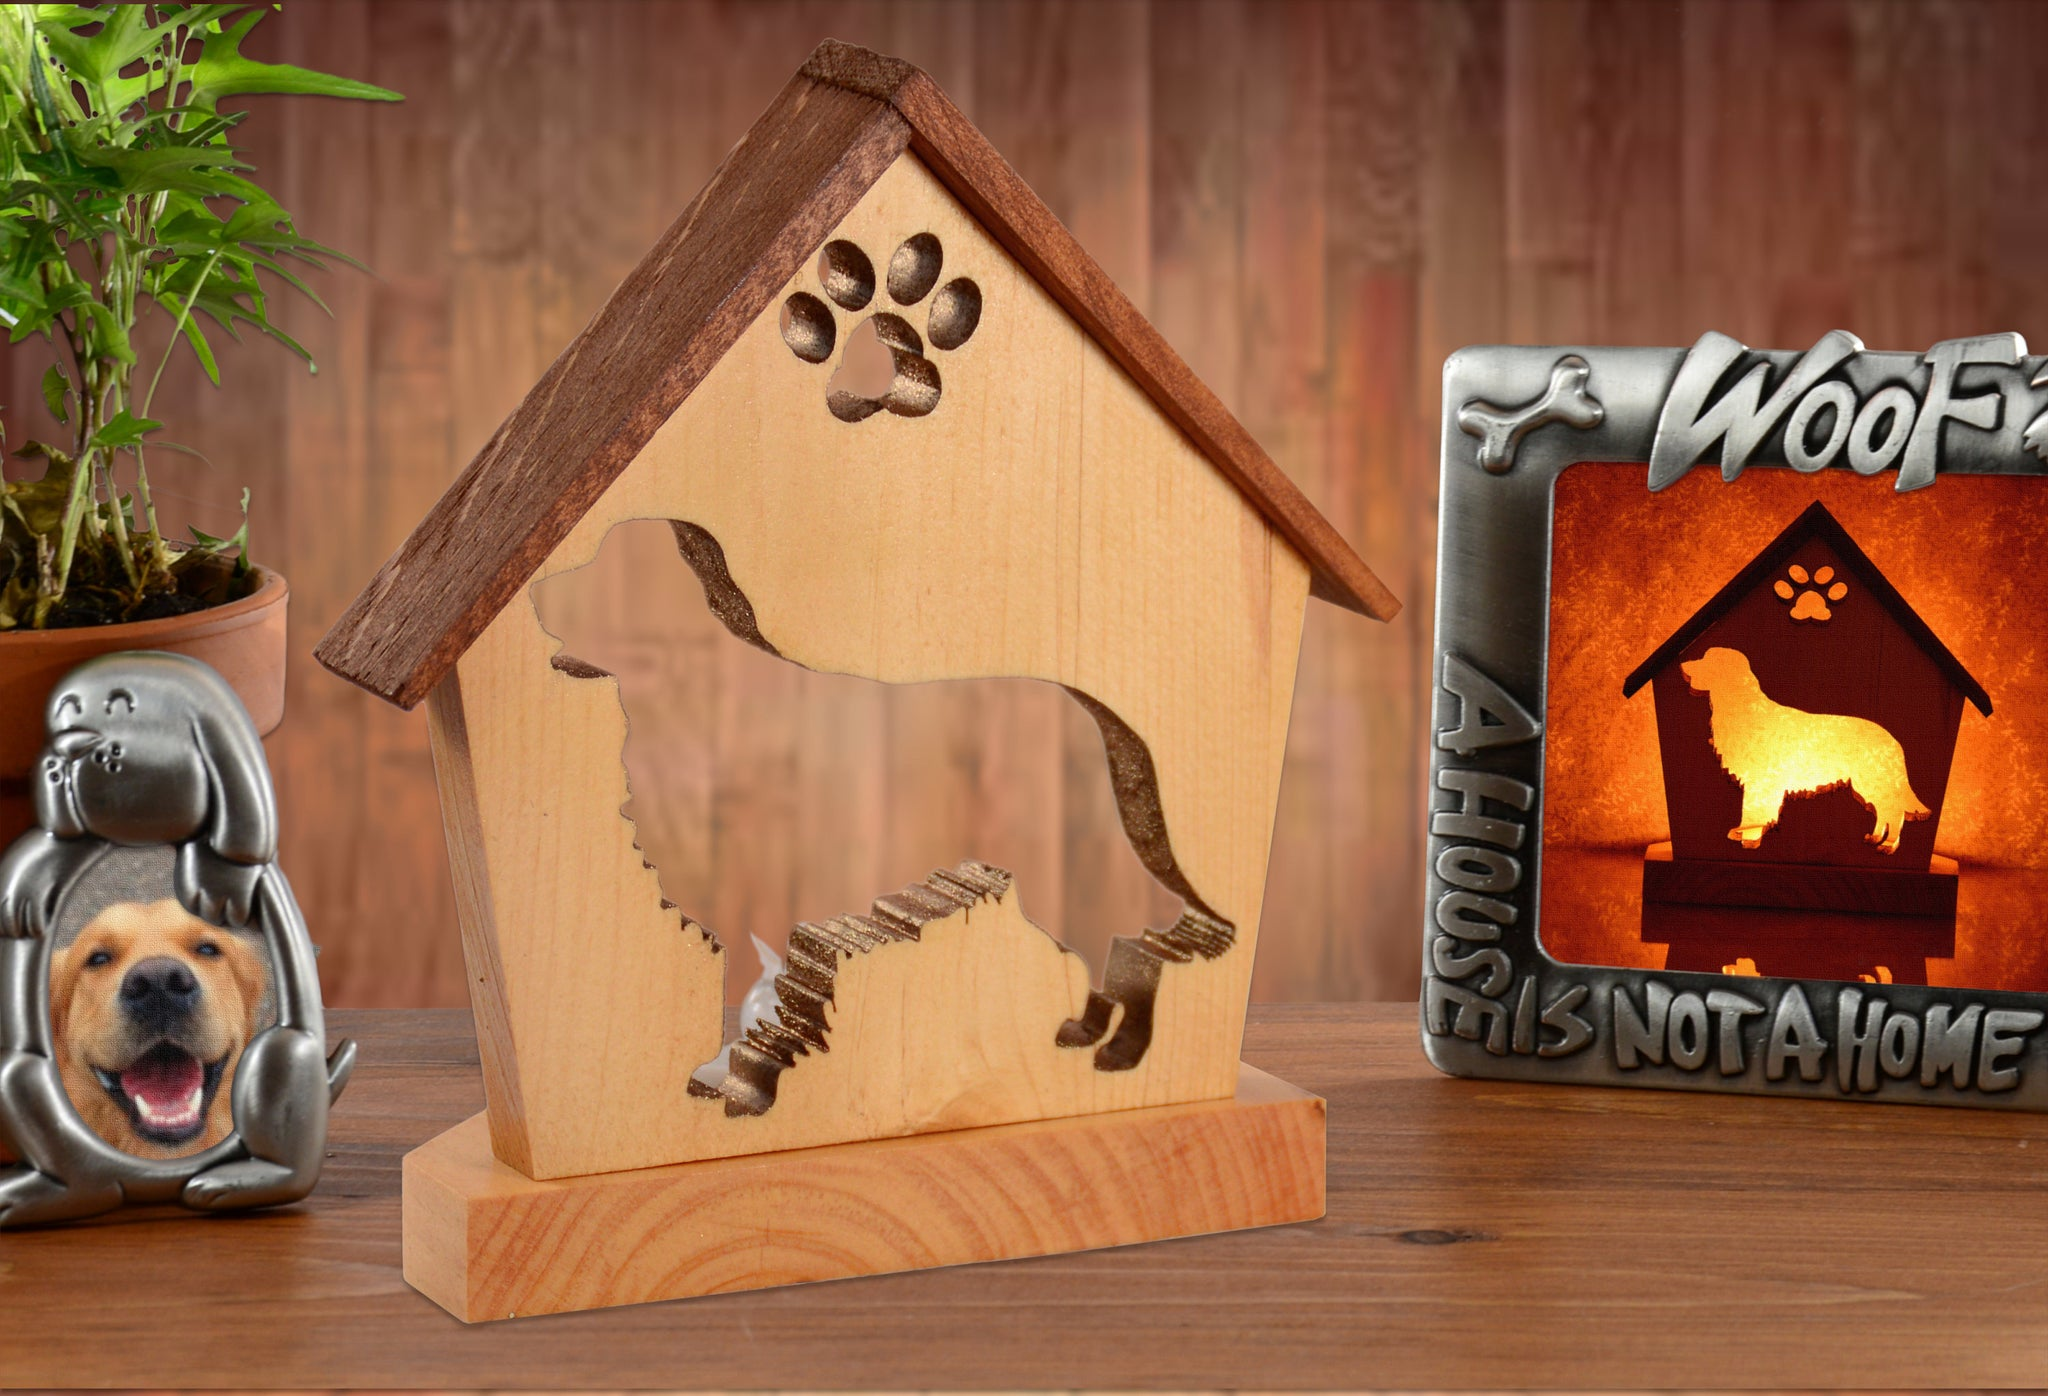 Golden Retriever Dog Memorial Keepsake Candle Holder • Personalized Gift for Dog Lovers